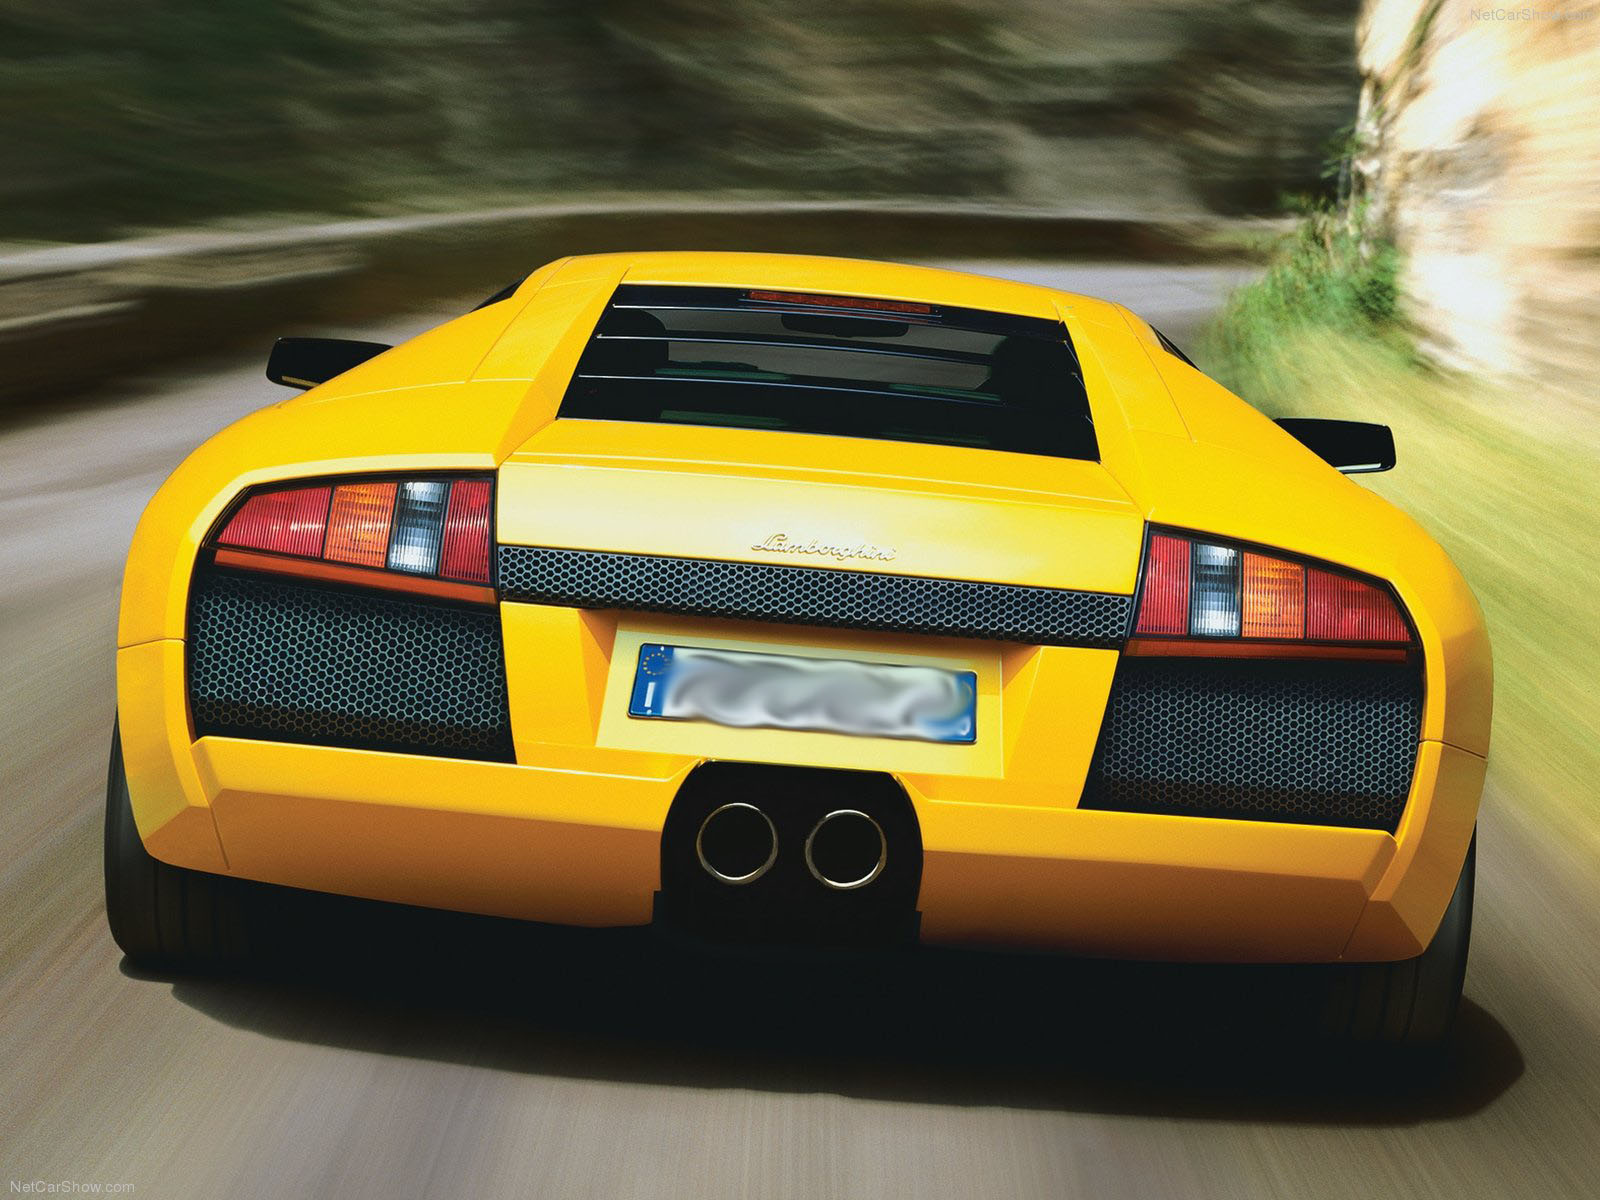 Lamborghini Murcielago Led 3rd Brake Light Type Sl 3240rd